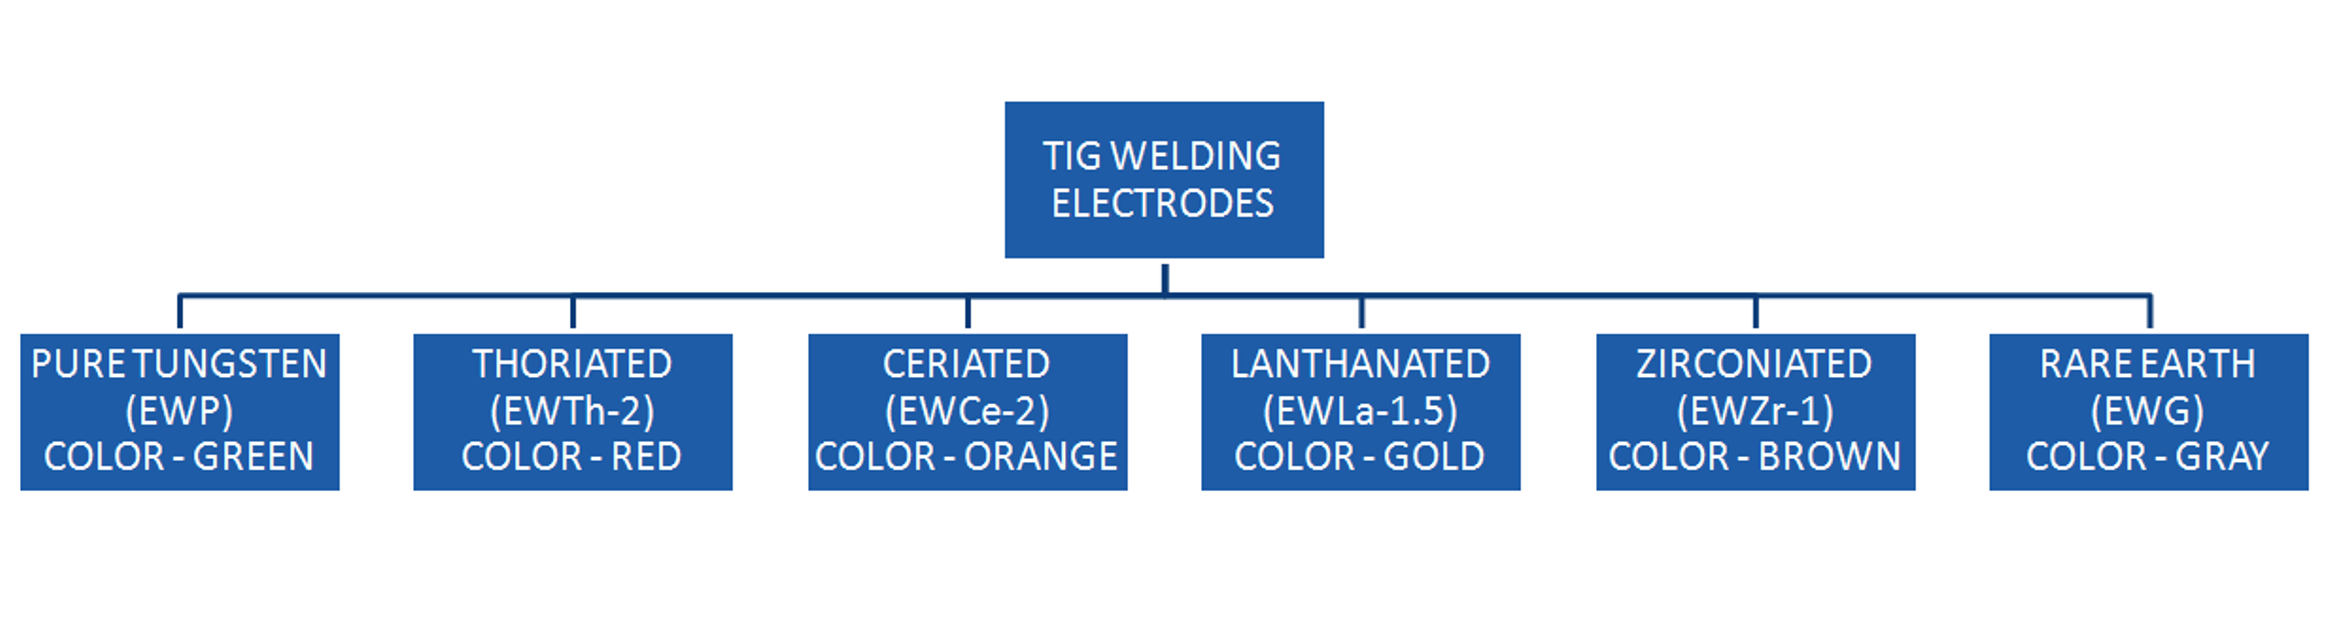 TIG welding electrodes classification